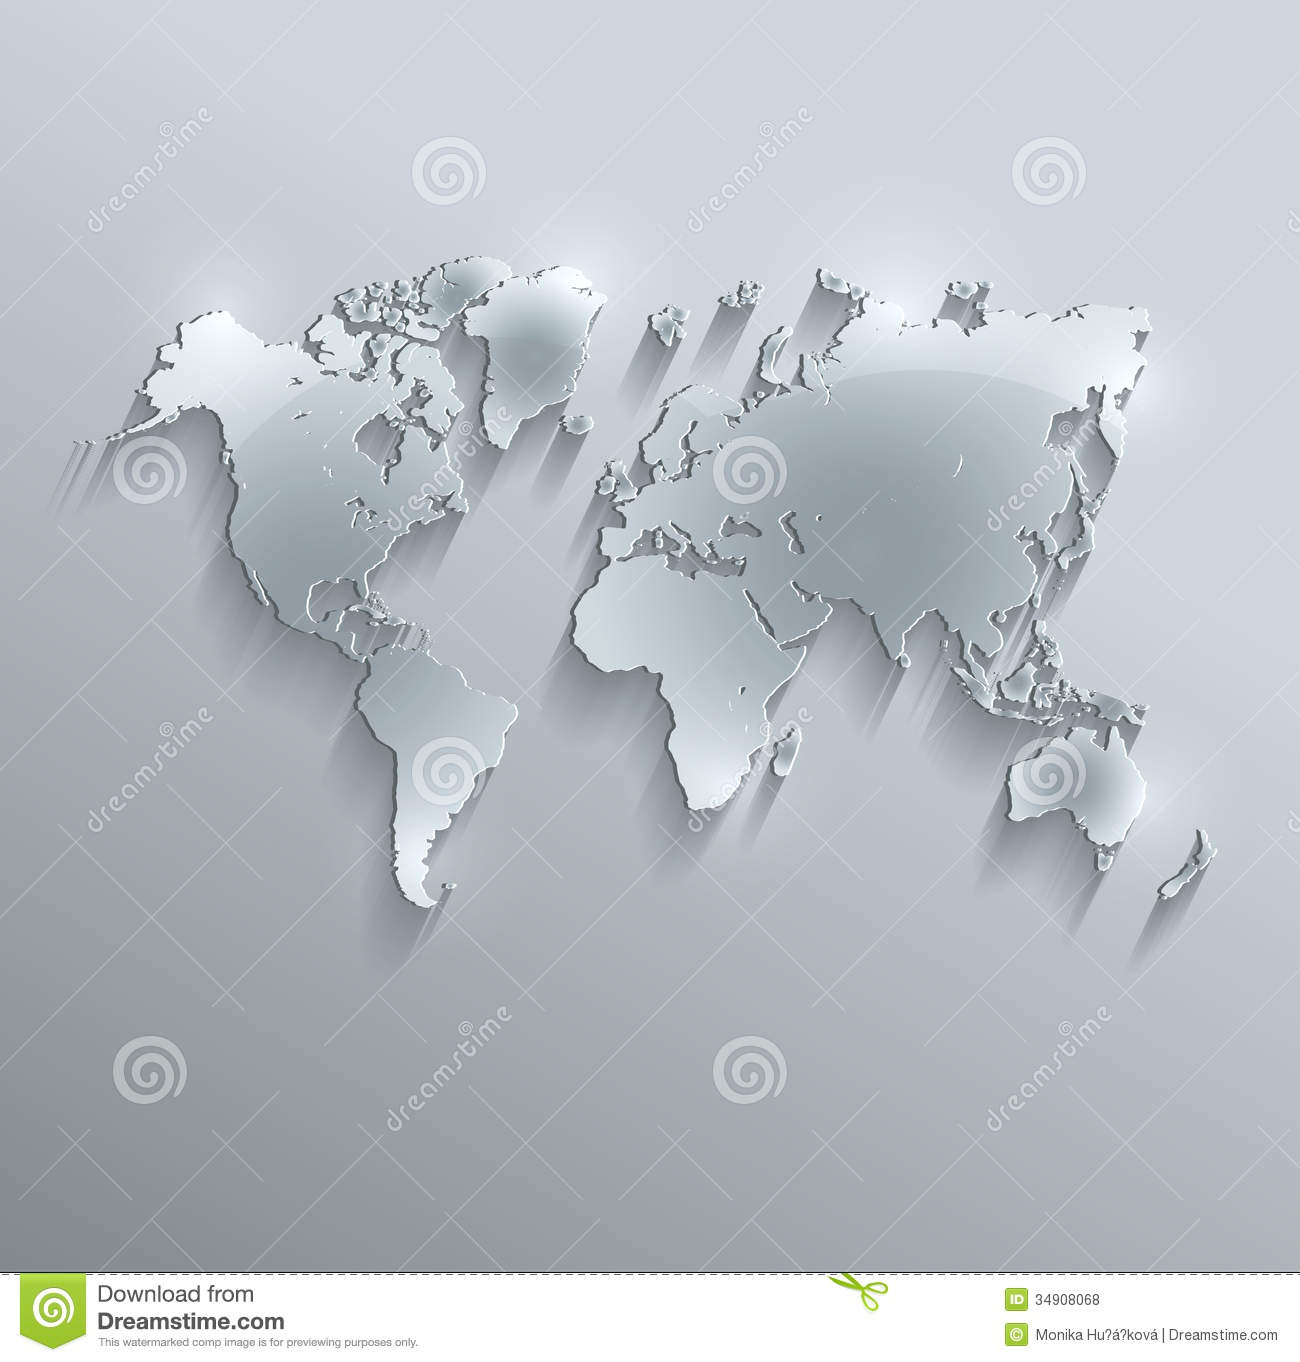 World map glass card paper 3d stock illustration illustration of world map glass card paper 3d gumiabroncs Gallery